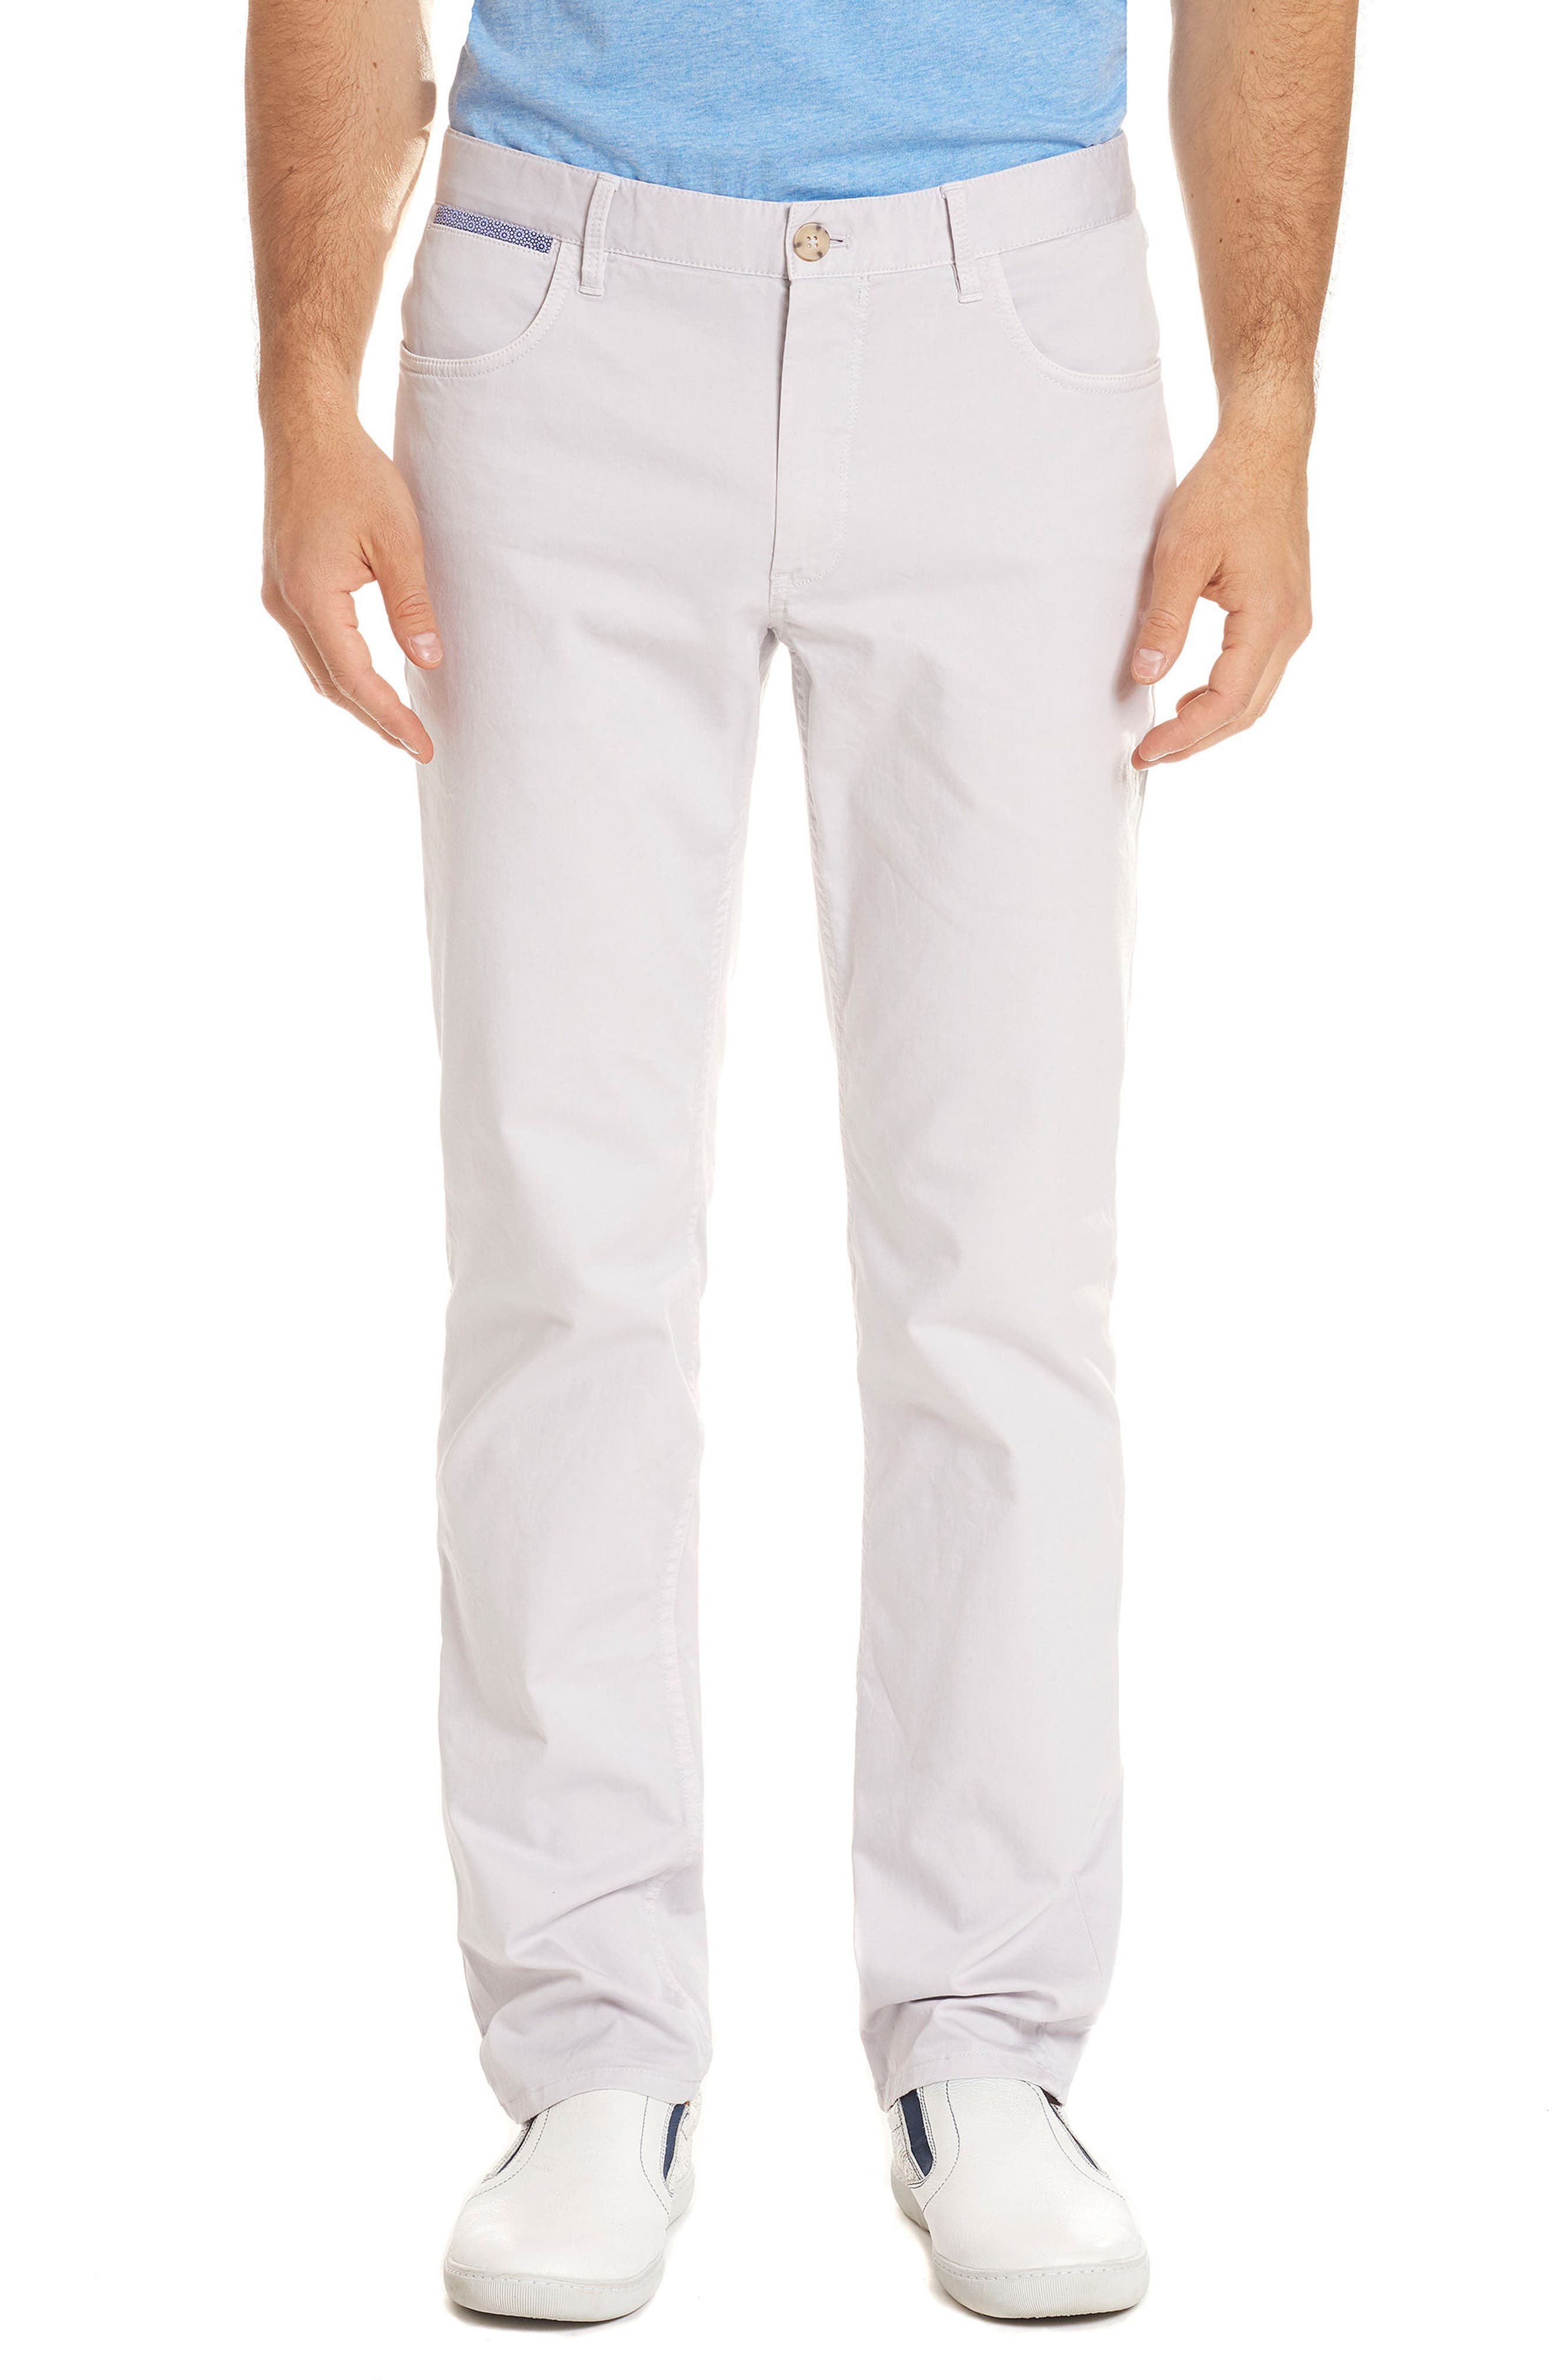 Marti Tailored Fit Pants,                         Main,                         color, 059